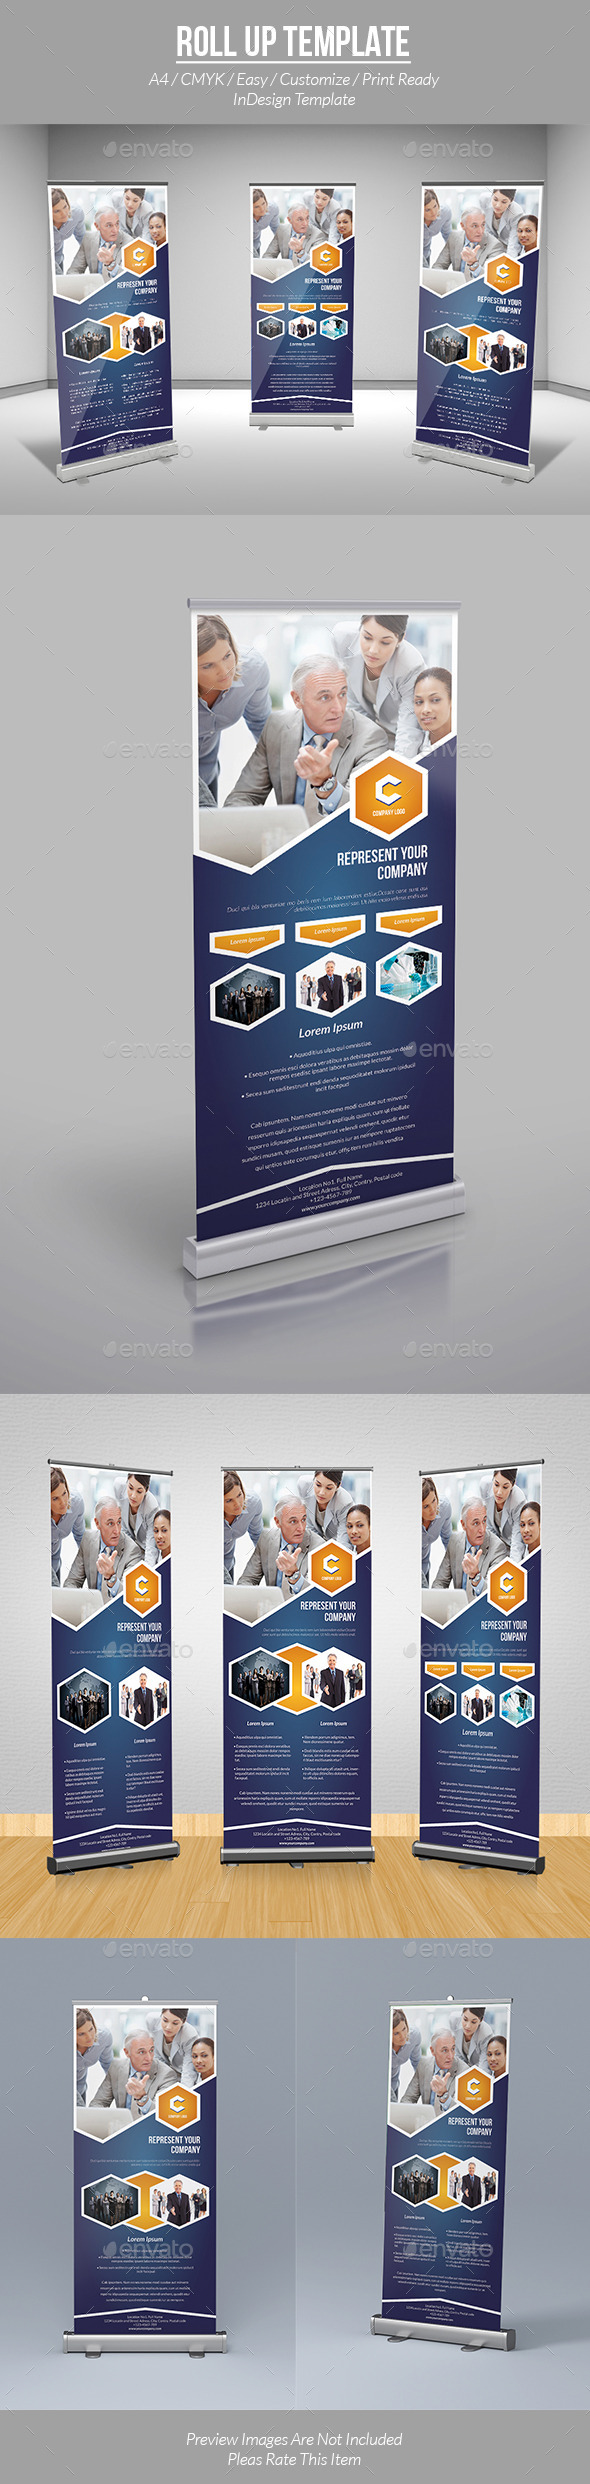 GraphicRiver Roll Up Template 9695986